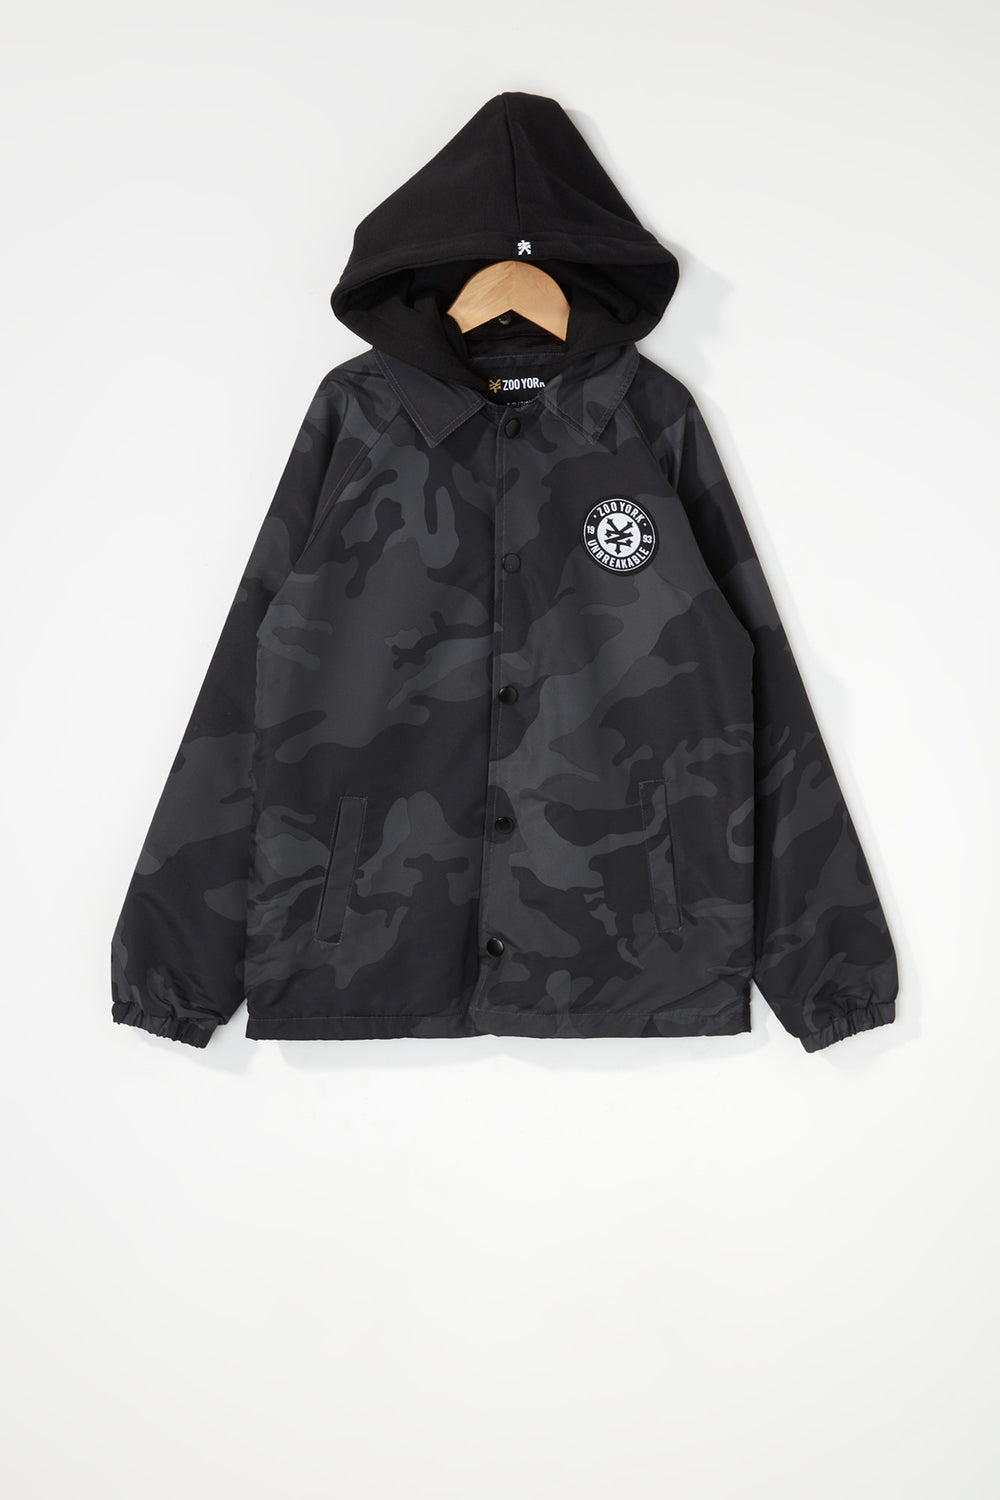 Zoo York Boys Patch Logo Coach Jacket Black with White